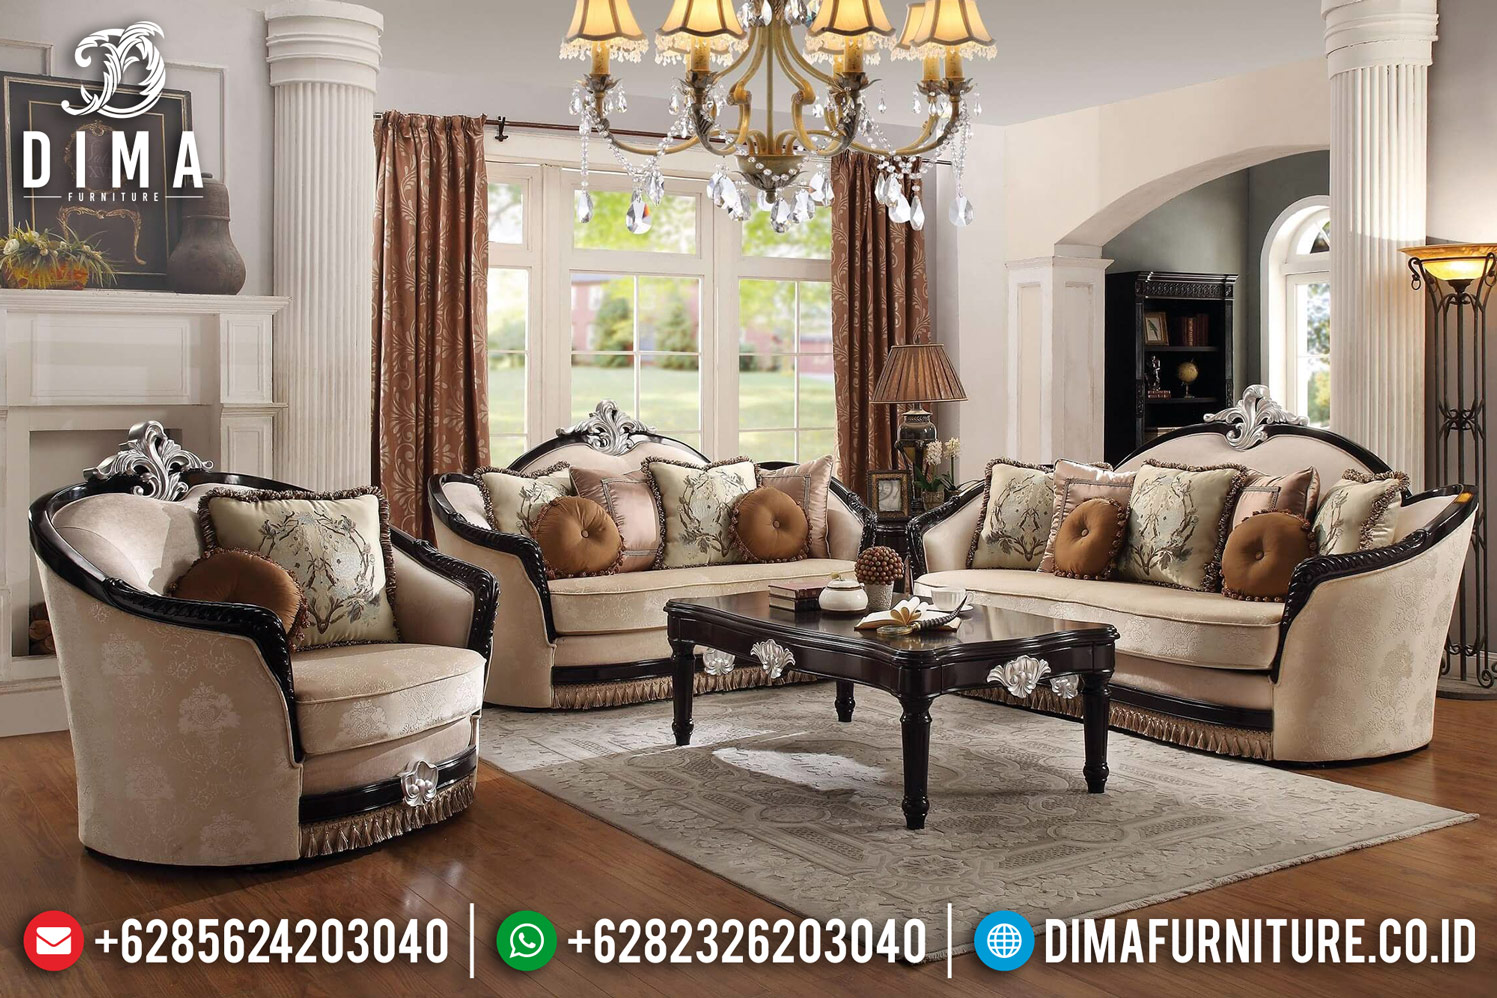 Ernestine New Sofa Tamu Mewah Classic Ukir Furniture Jepara DF-1194